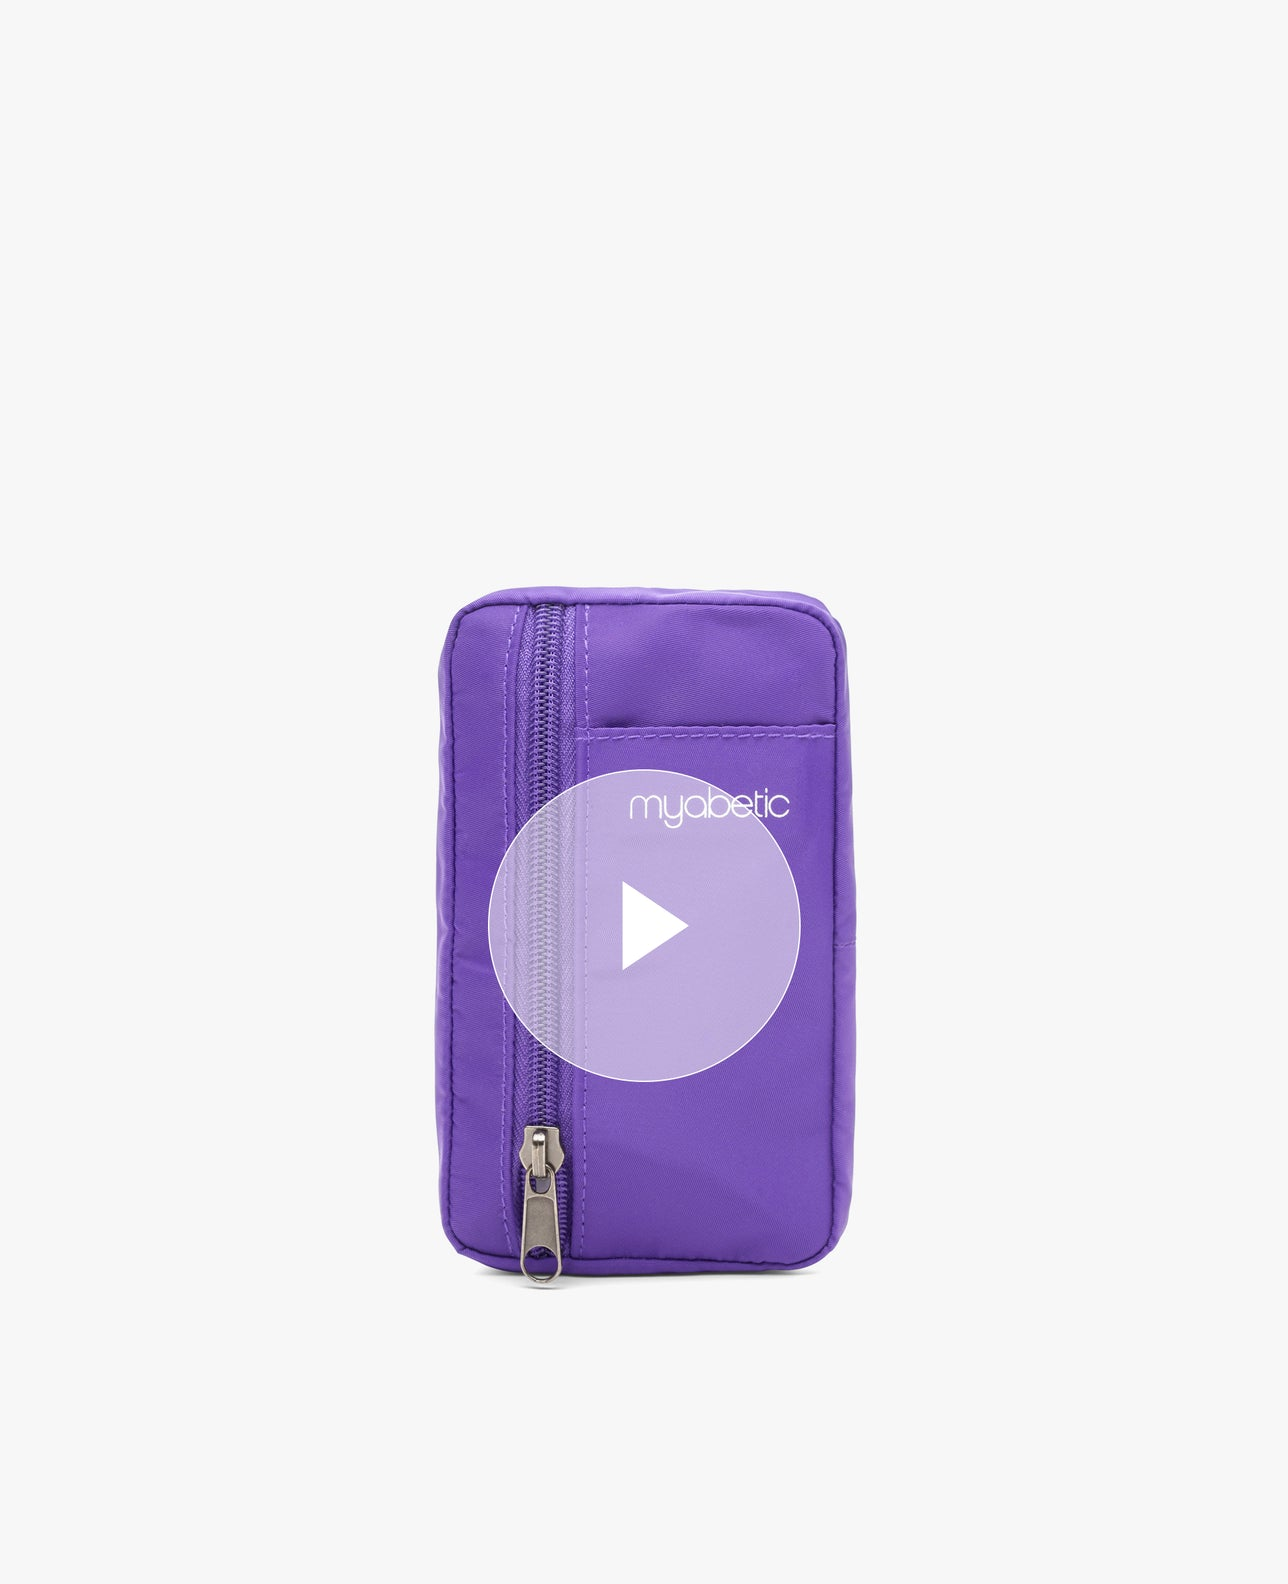 color:purple  https://player.vimeo.com/video/511451689